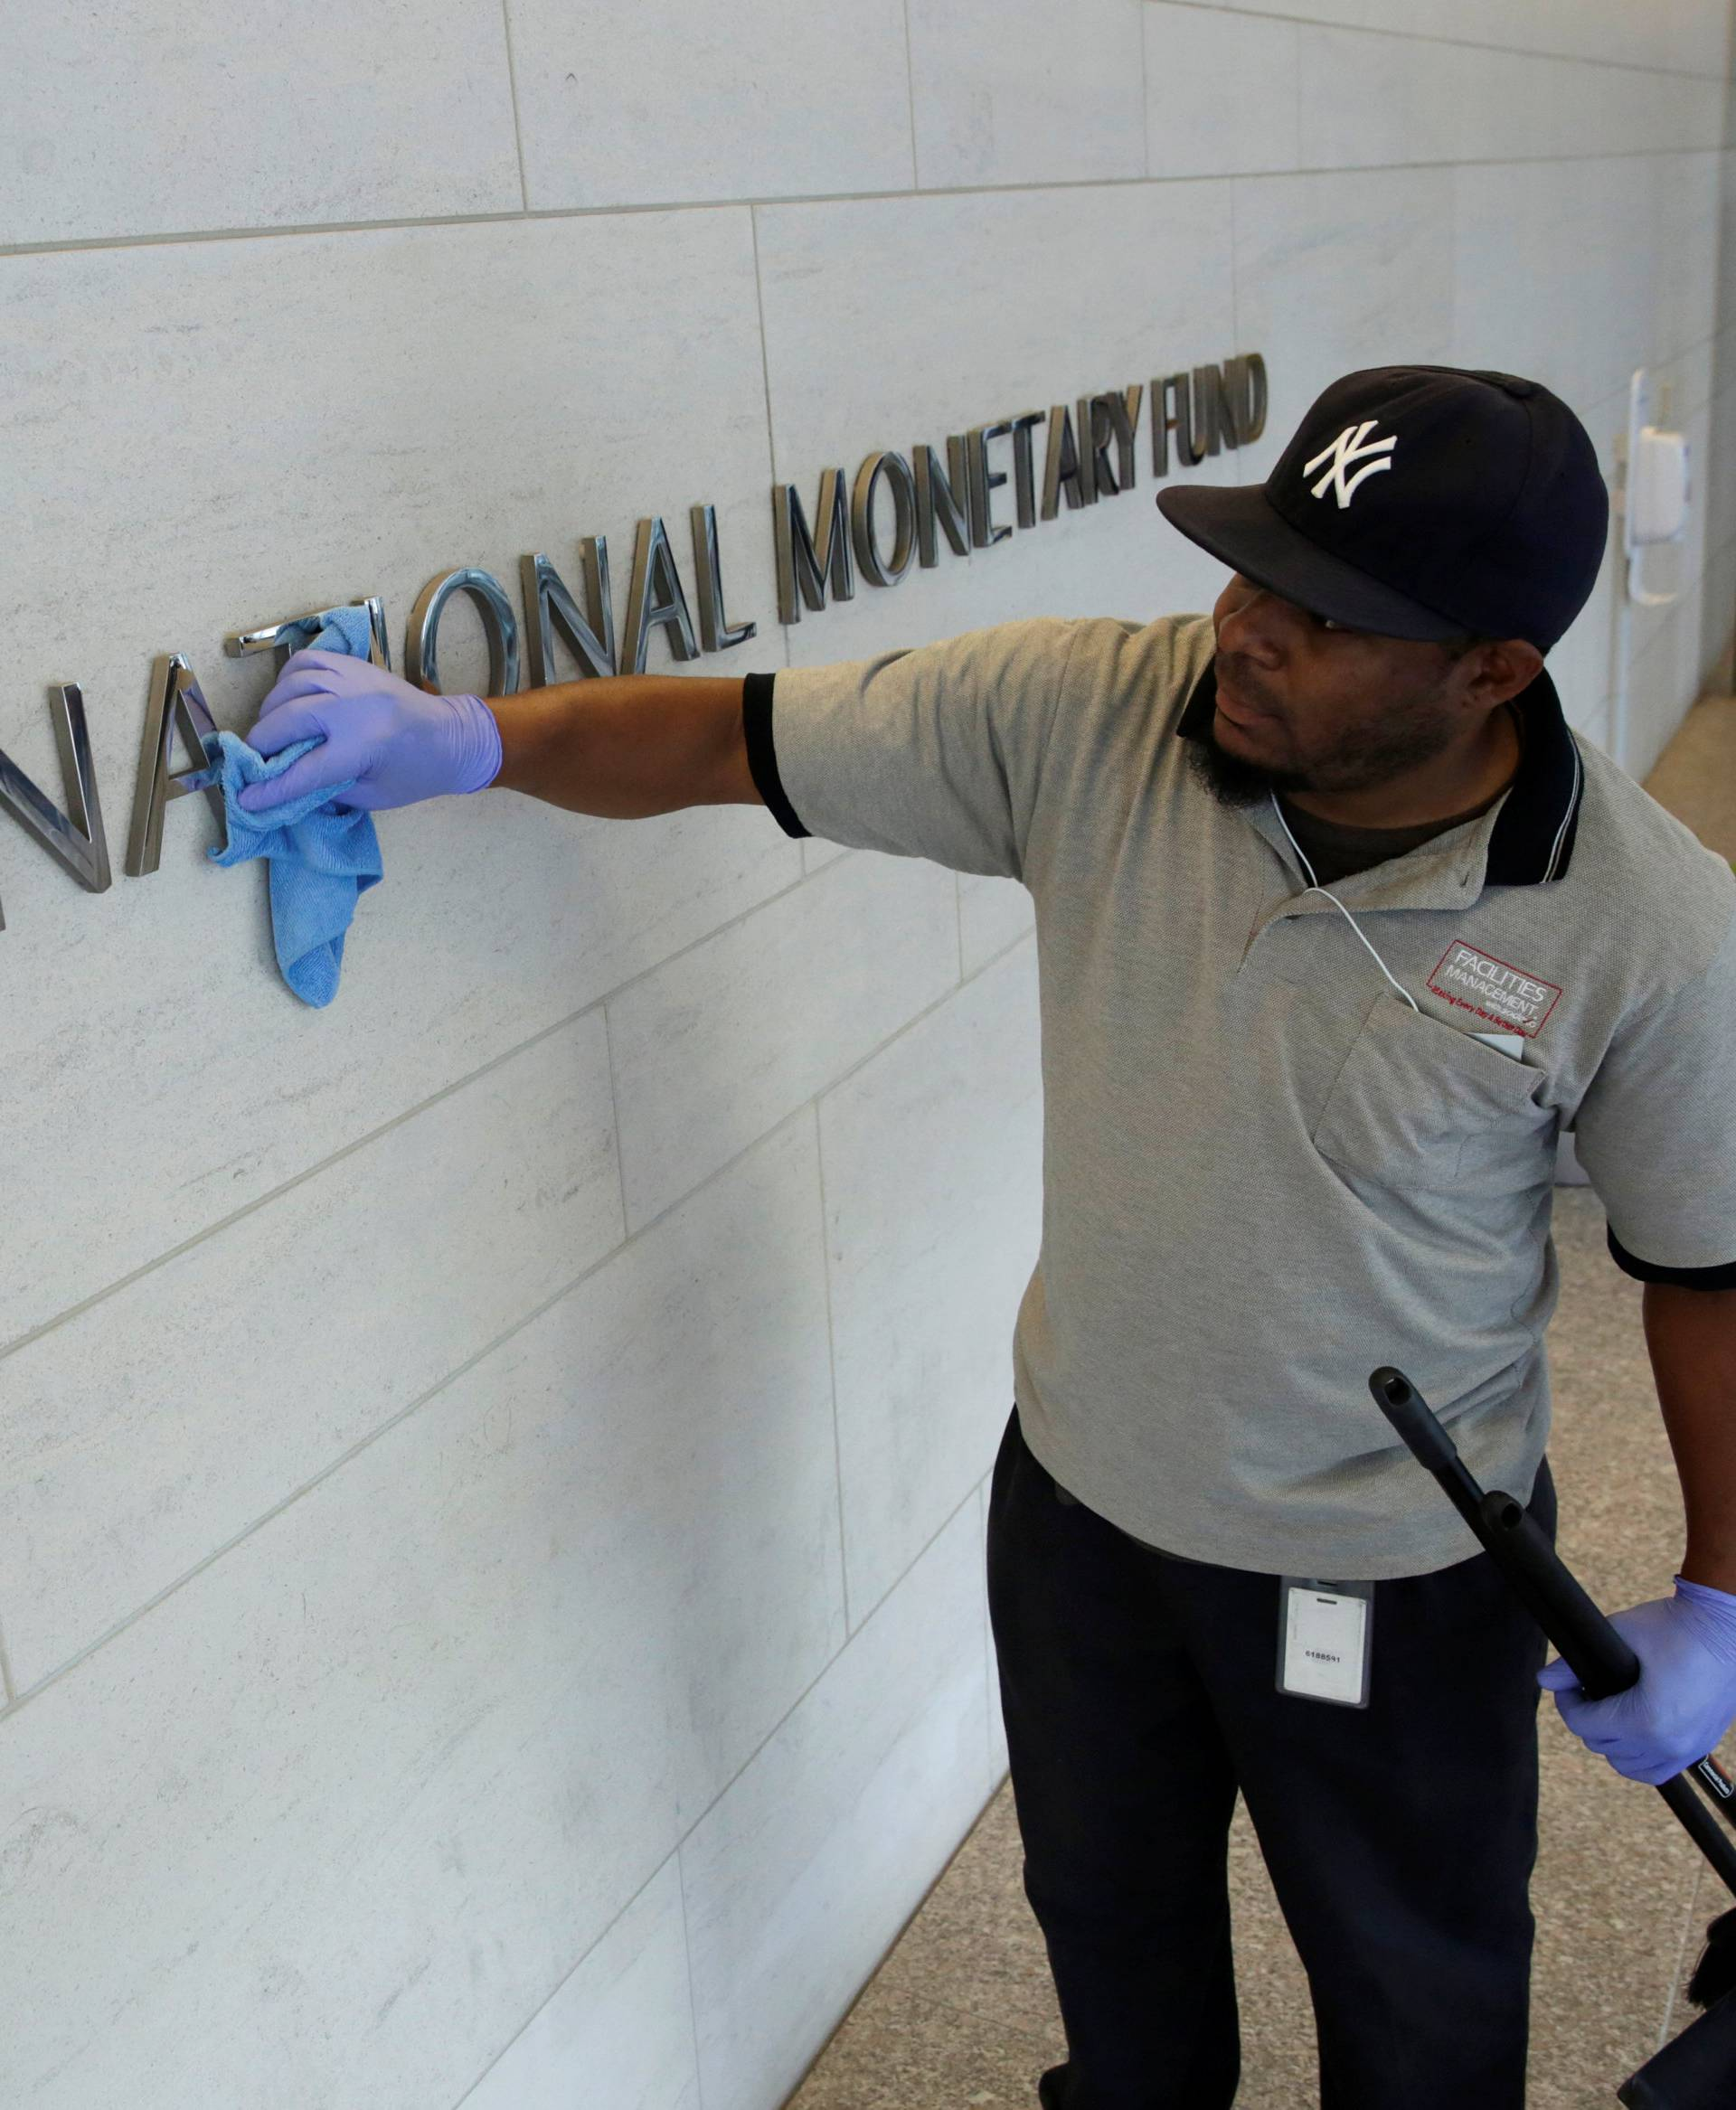 Staff cleans signage at International Monetary Fund headquarters in Washington